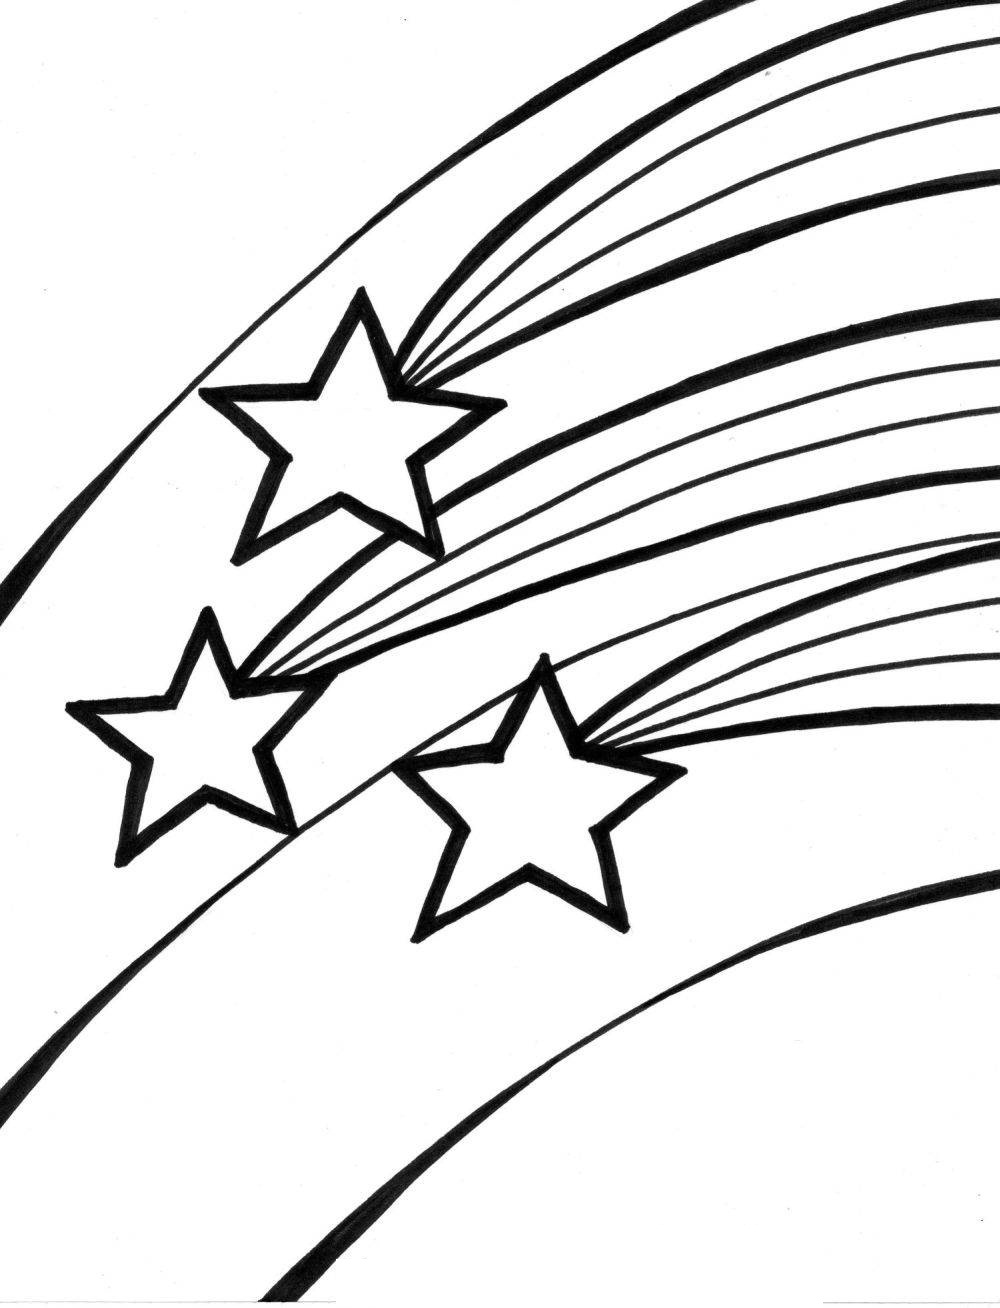 star outline coloring page best star outline 2008 clipartioncom star coloring outline page